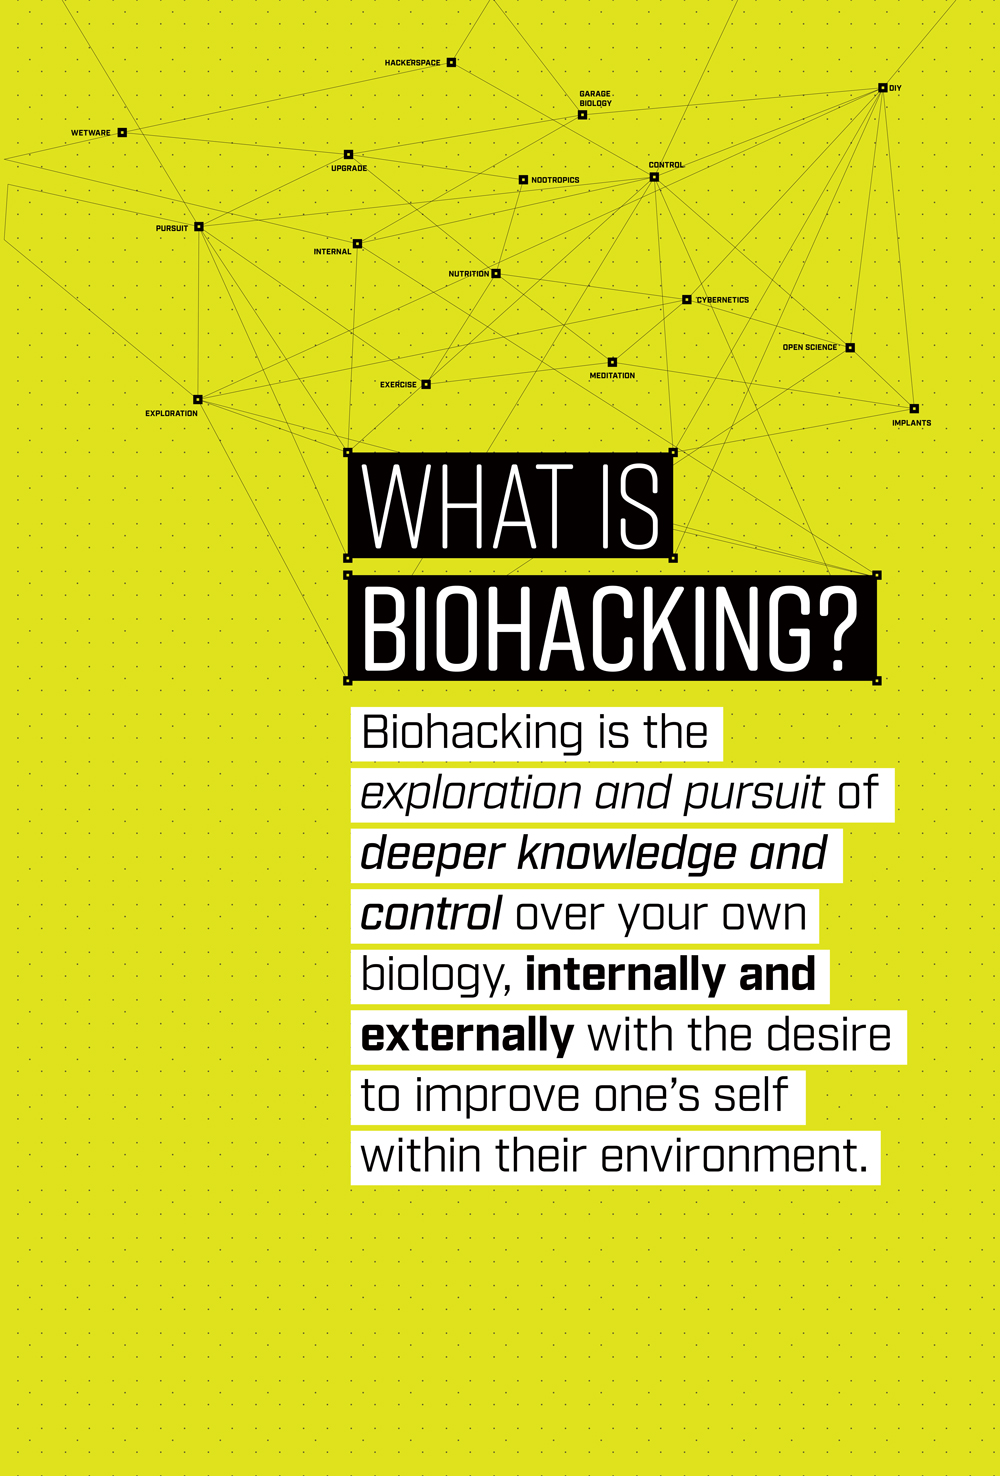 Defining Biohacking for Savannah, GA